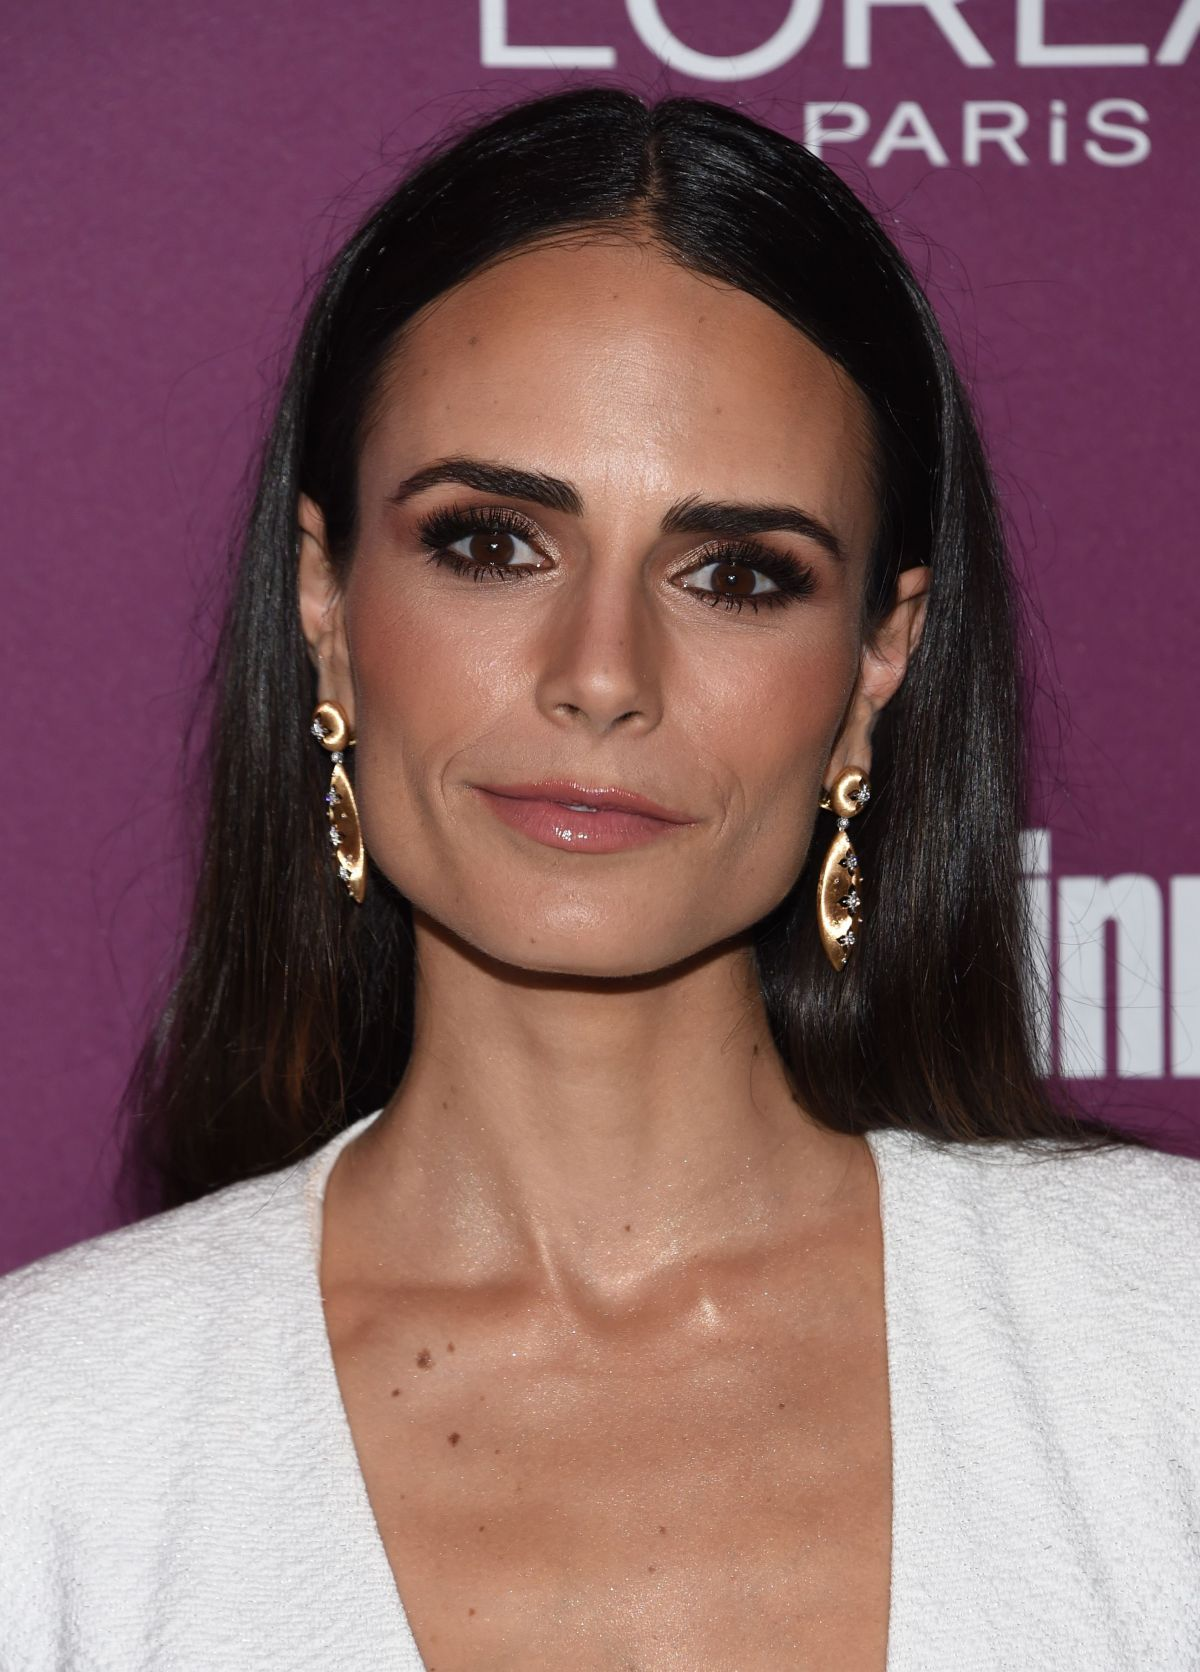 15 Jordana Eggplant 20 1 49: JORDANA BREWSTER At 2017 Entertainment Weekly Pre-emmy